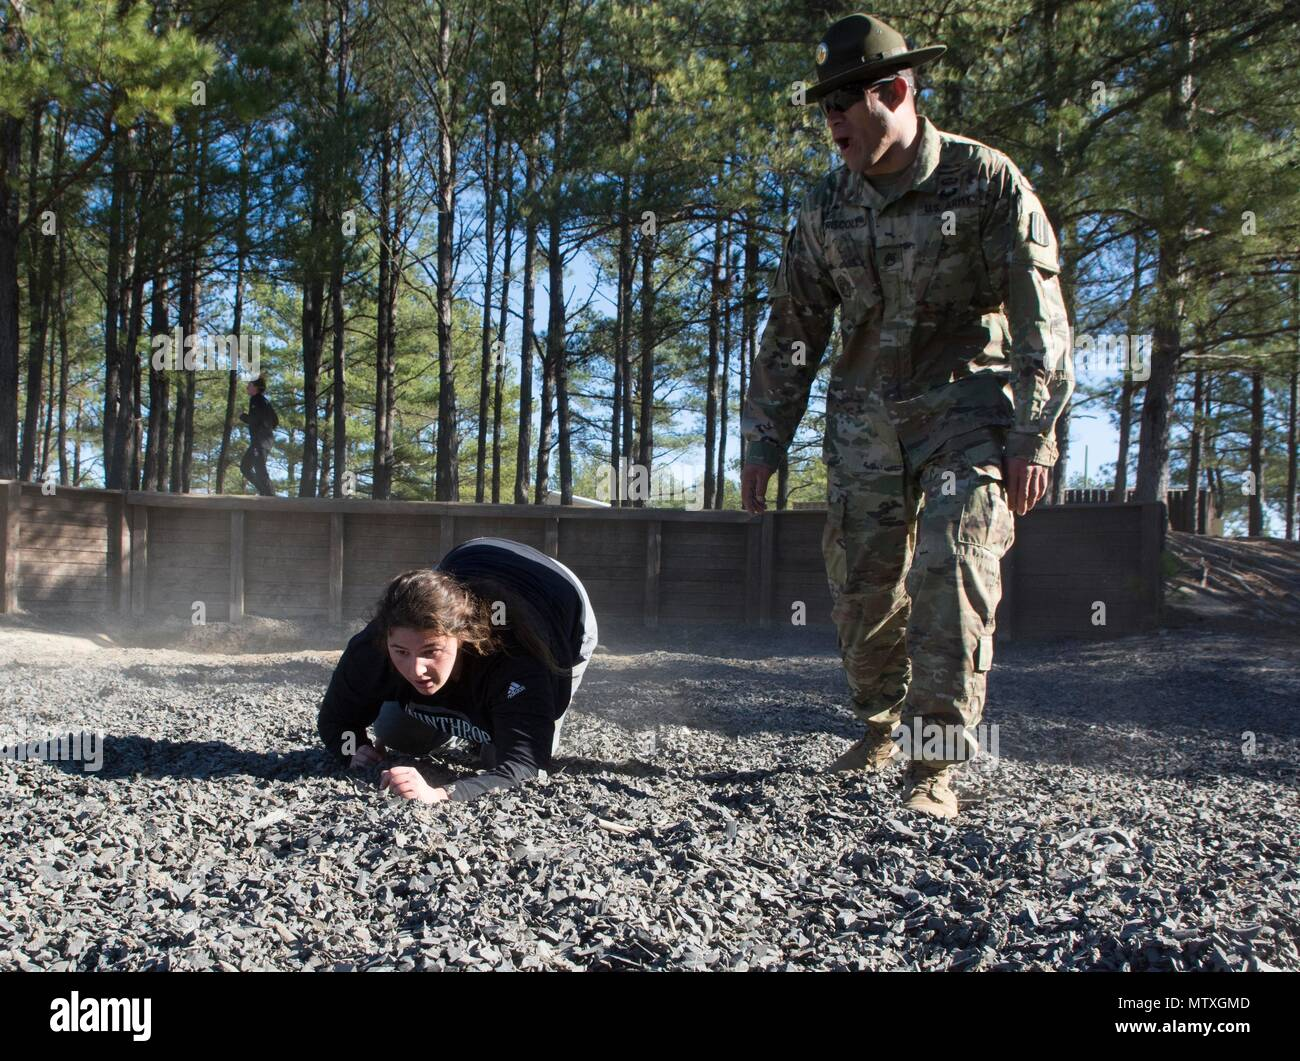 Alaina Girani, a junior goalie, and Wirtz, Va. native, on the Winthrop University Women's Lacrosse Team, is motivated to crawl to the end of Fit to Win 2 by Staff Sgt. Eric M. Driscoll, a drill sergeant with Alpha Company, 1st Battalion, 13th Infantry Regiment, during a team building exercise on Fort Jackson Jan. 28. (U.S. Army photo by Robert Timmons, Fort Jackson Public Affairs/Released) - Stock Image